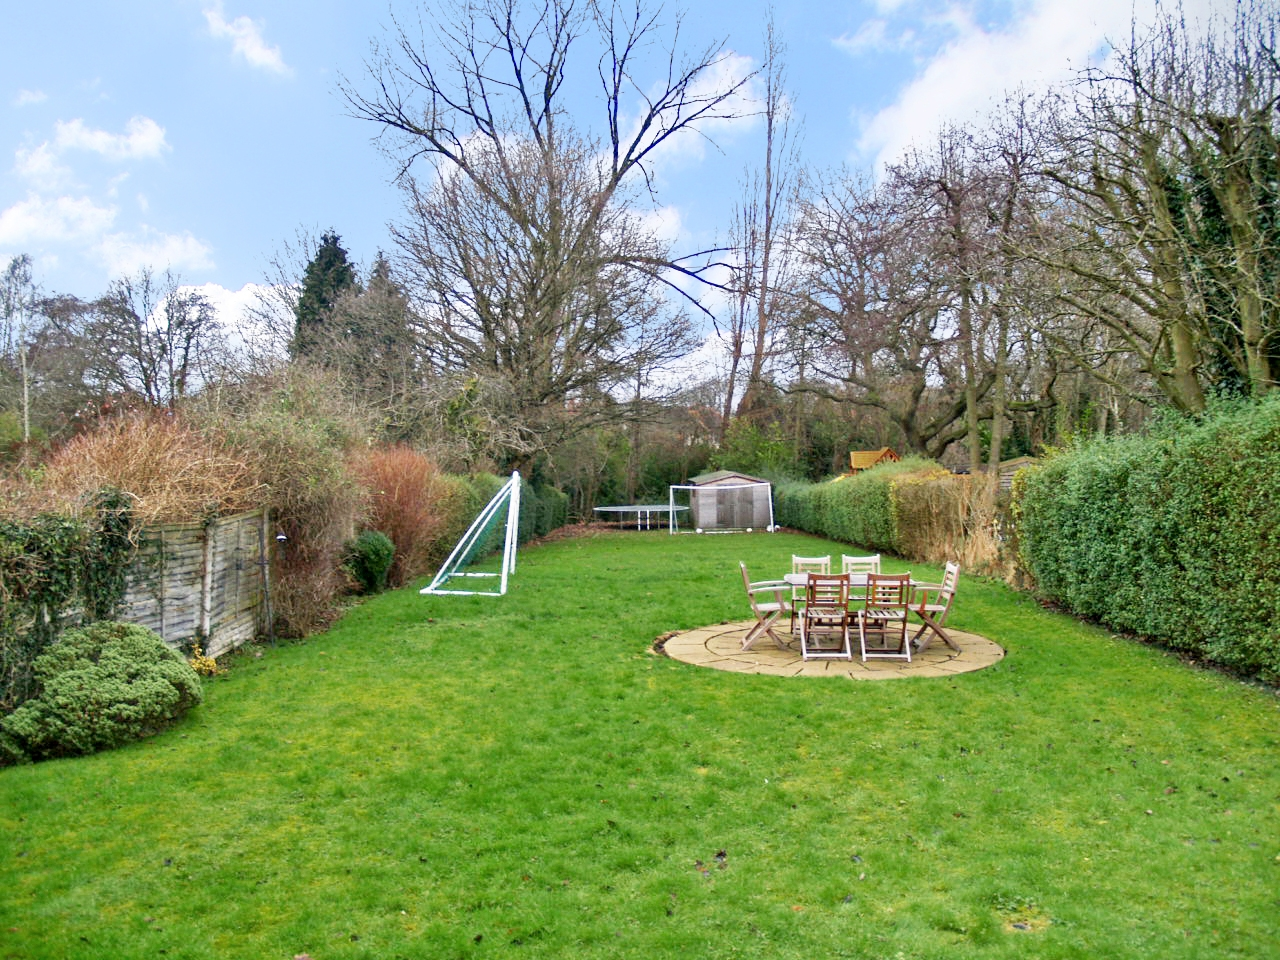 5 bedroom semi detached house SSTC in Solihull - photograph 4.